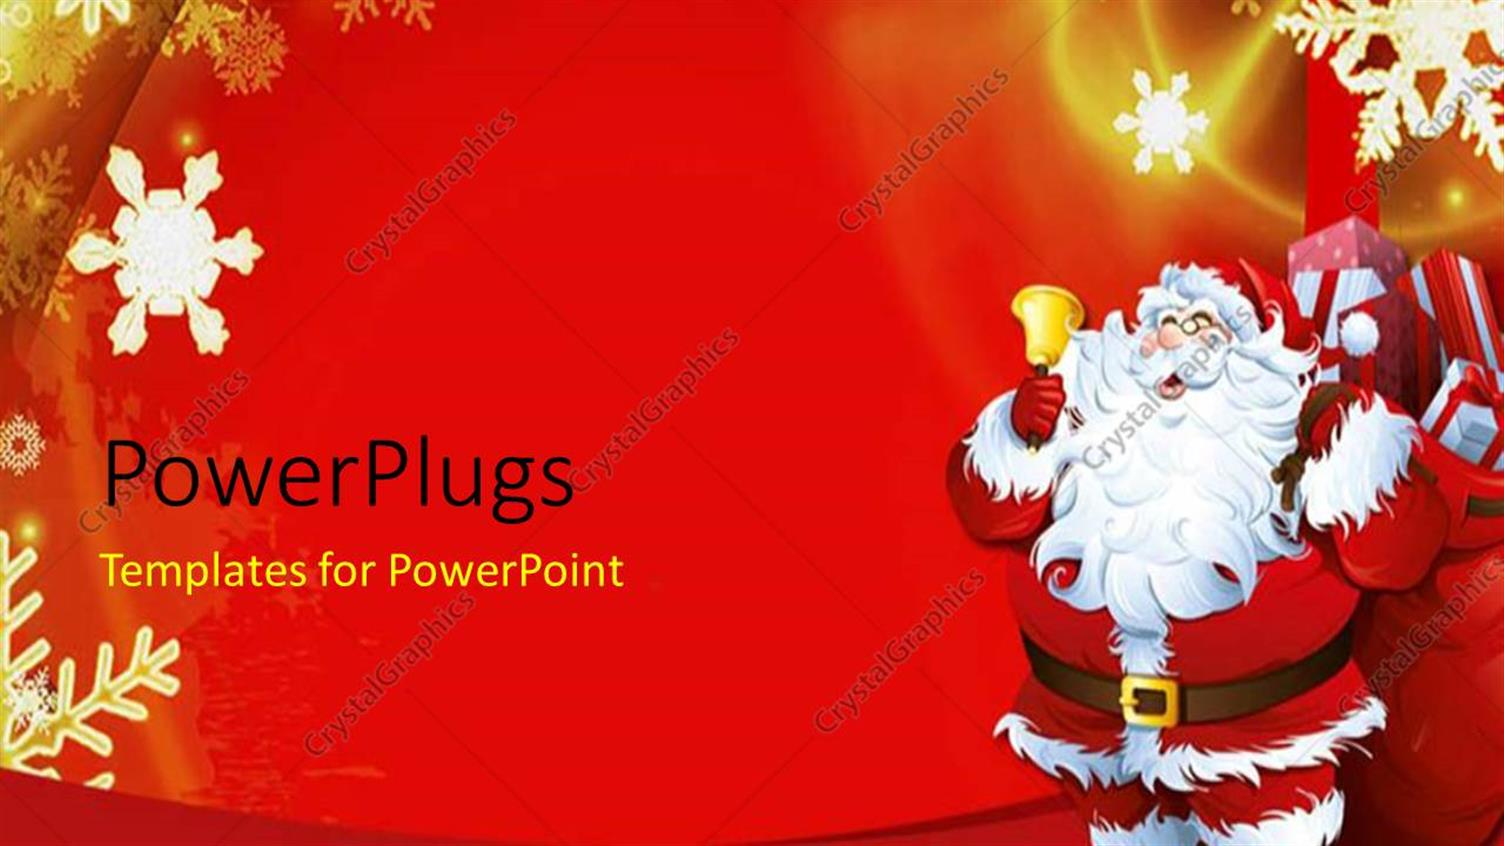 PowerPoint Template Displaying Christmas Theme with Santa Claus Ringing Golden Bell and Snow Flakes